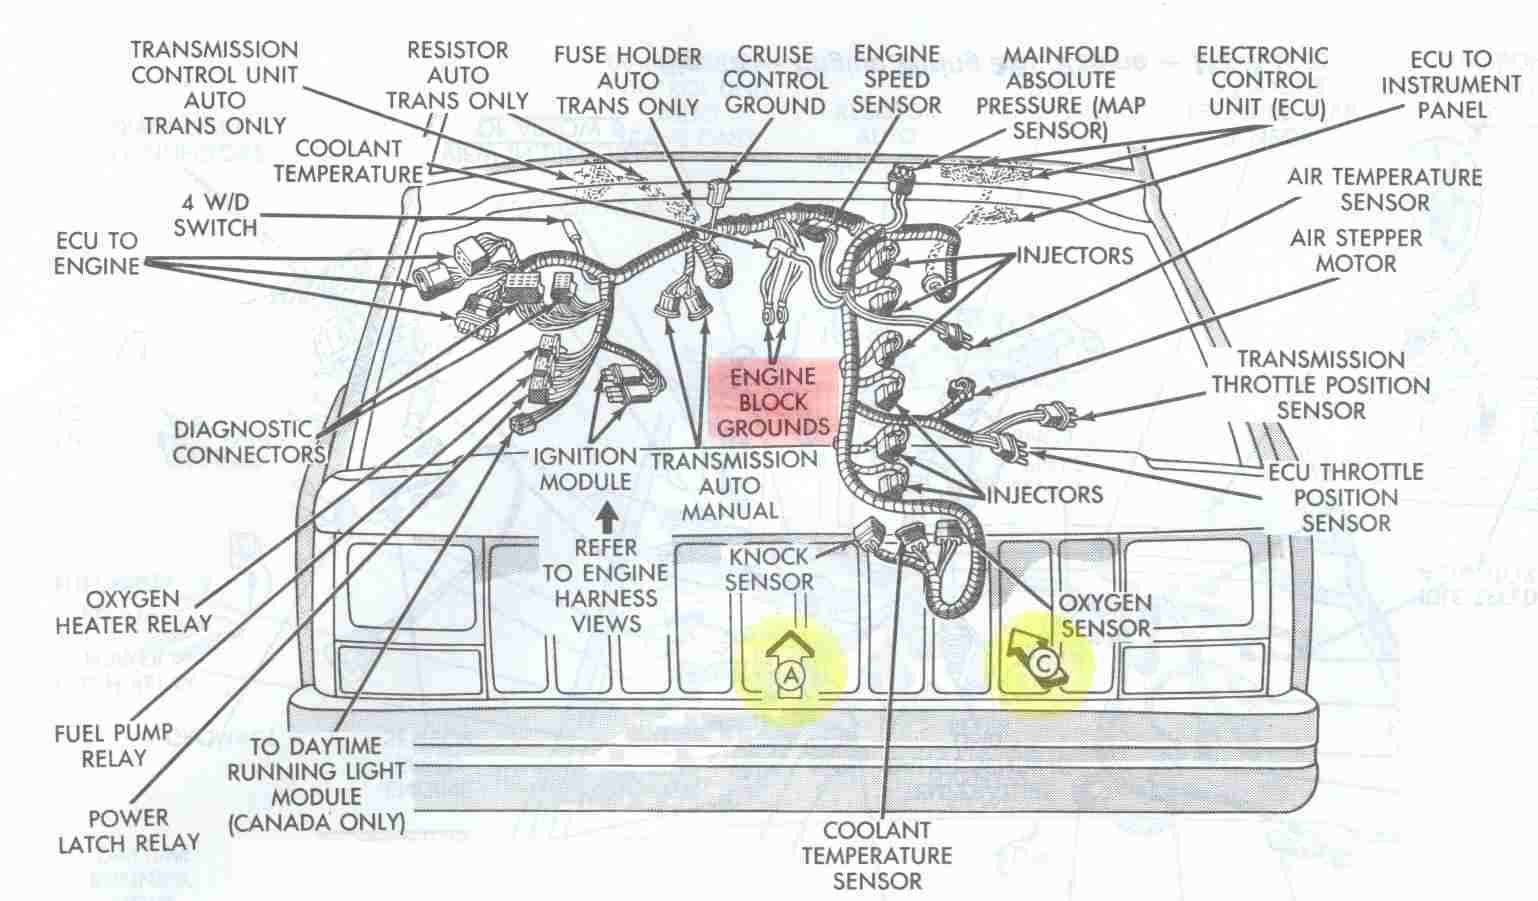 Jeep Cherokee Wiring Harness - Wiring Diagram Schematic Name on 97 jeep cherokee bumper, 97 jeep cherokee flywheel, 97 jeep cherokee lights, 97 jeep cherokee windshield, 97 jeep cherokee proportioning valve, 97 jeep cherokee fuel line, 97 jeep cherokee glass, 97 jeep cherokee wheels, 97 jeep cherokee ac compressor, 97 jeep cherokee serpentine belt, 97 jeep cherokee spring, 97 jeep cherokee door latch, 97 jeep cherokee mirrors, 97 jeep cherokee speaker, 97 jeep cherokee neutral safety switch, 97 jeep cherokee power steering pump, 97 jeep cherokee exhaust system, 97 jeep cherokee ignition module, 97 jeep cherokee shifter, 97 jeep cherokee gauges,